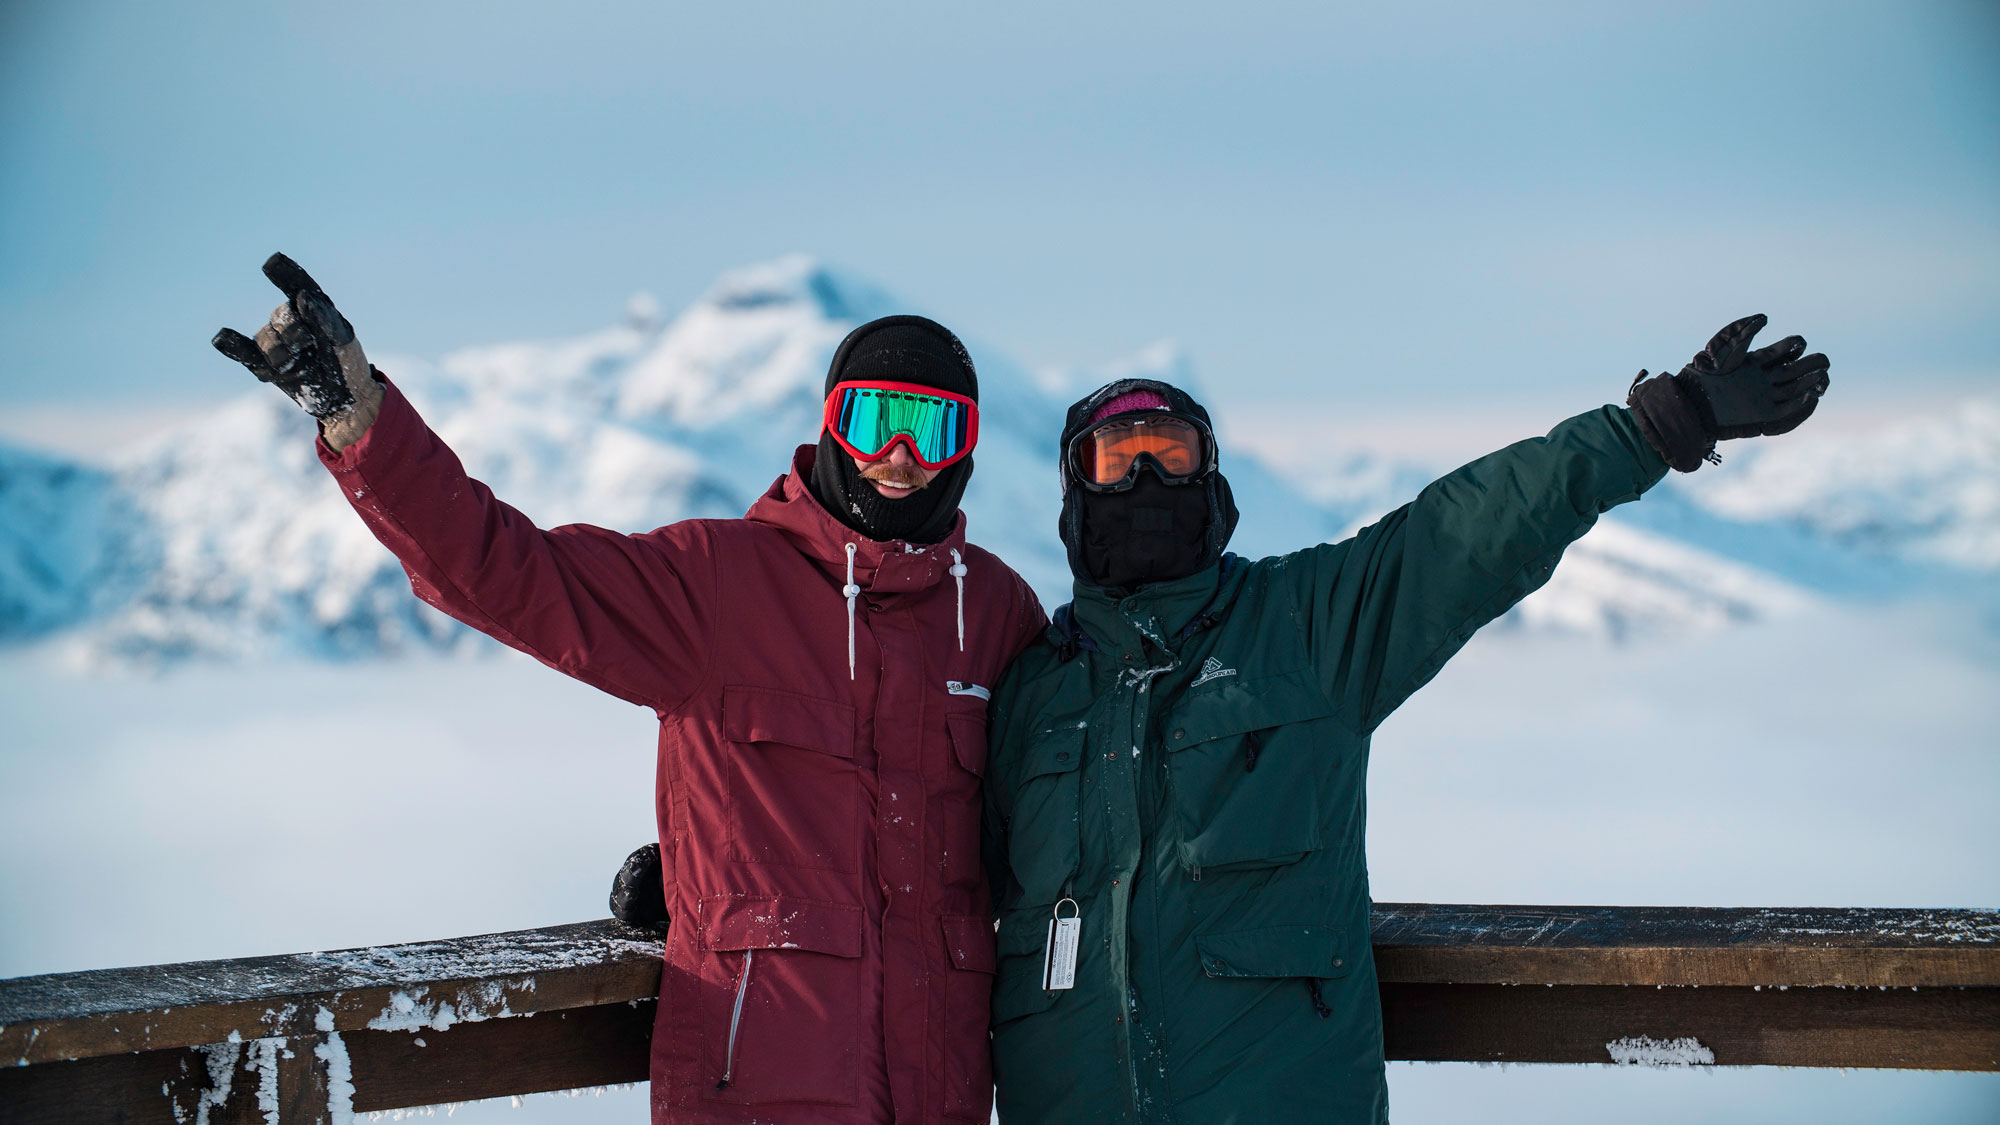 Learn to ski and Board FREE, Discovery Days on now at Mount Washington!